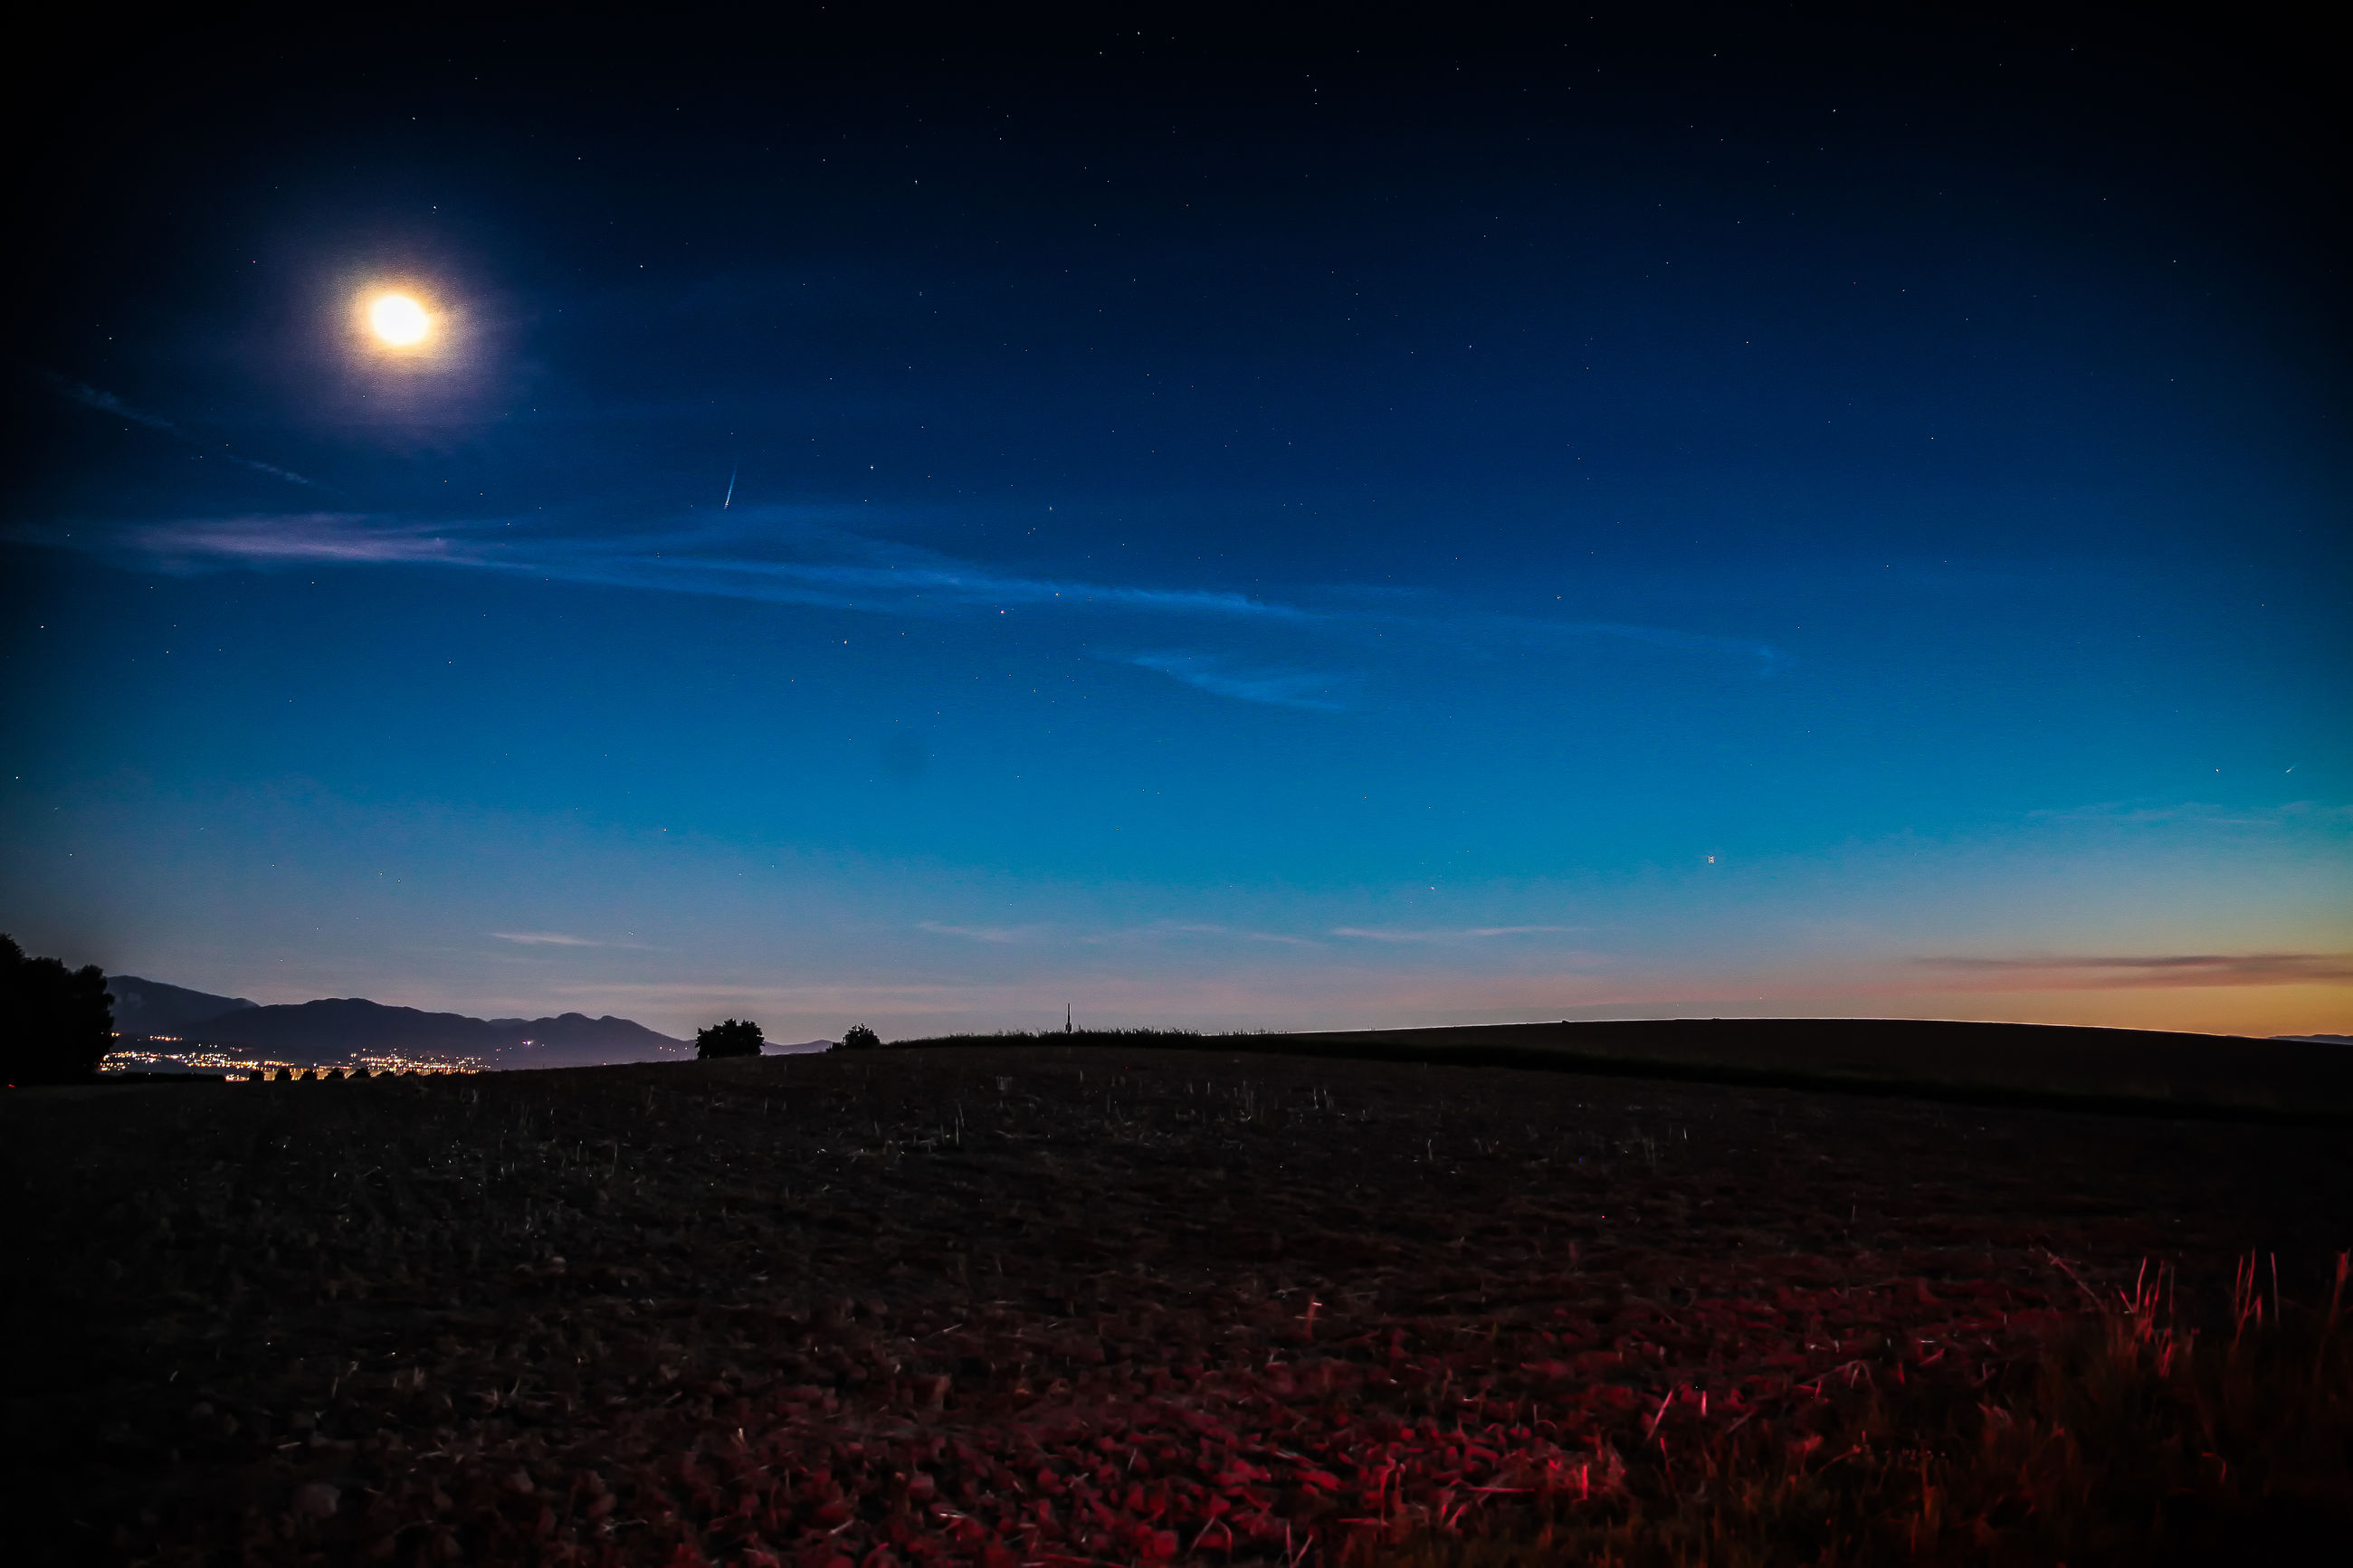 tranquil scene, scenics, night, tranquility, beauty in nature, sky, landscape, star - space, nature, moon, field, distant, cityscape, dark, blue, star, star field, glowing, outdoors, astronomy, mountain, non-urban scene, majestic, remote, mountain range, land, no people, atmosphere